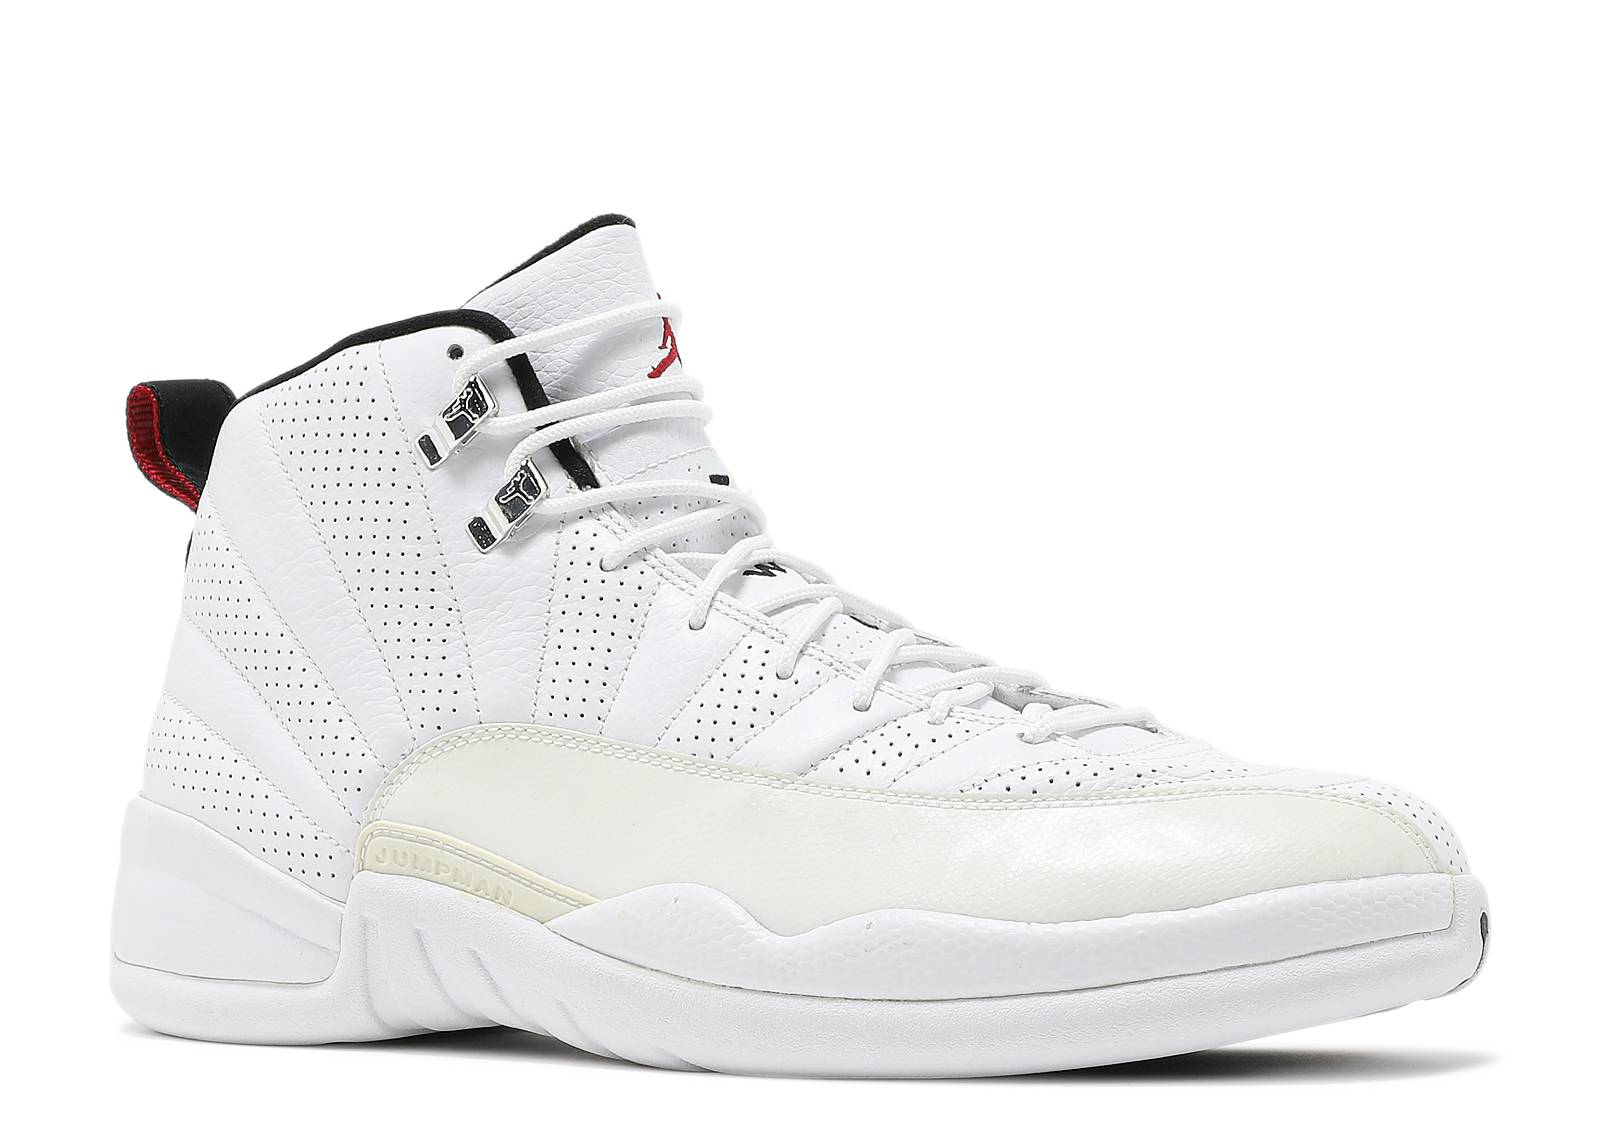 air jordan 12 retro rising sun limited release shoes